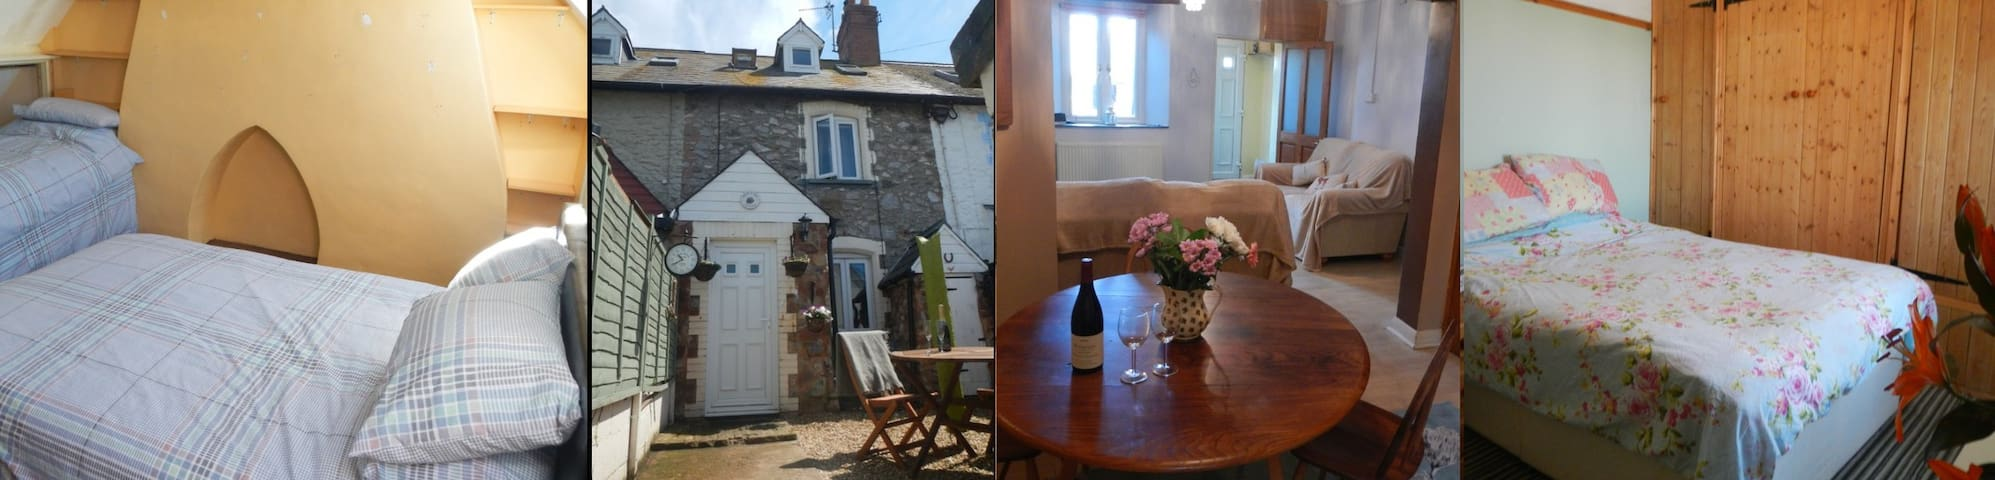 3 Bed Cottage in Sea Side Town Watchet near Exmoor - Watchet - 一軒家